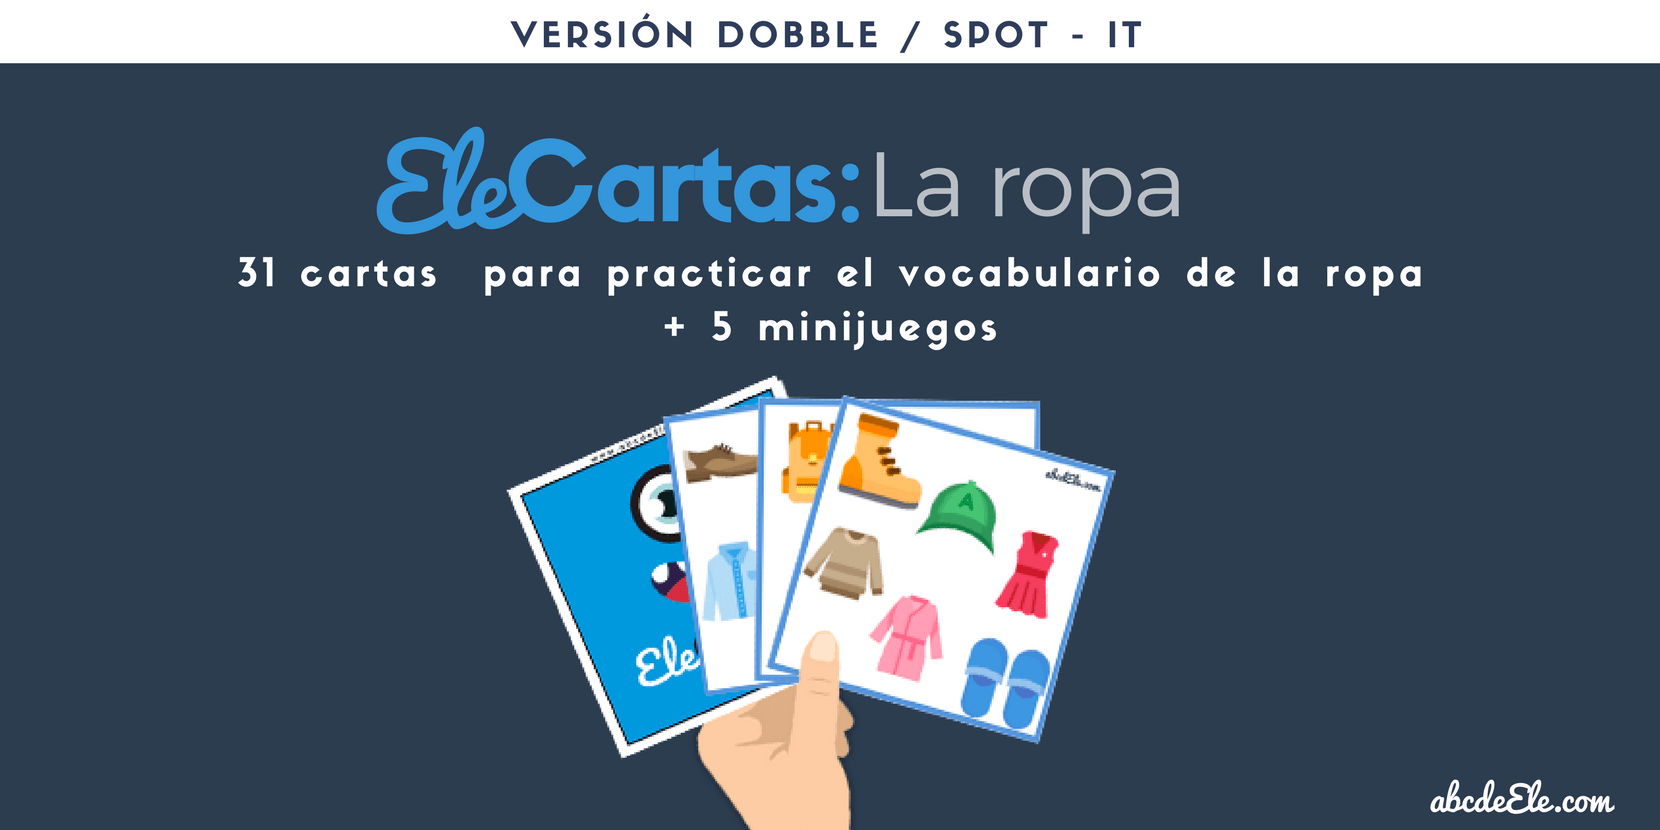 Ele Cartas La Ropa Dobble Spot It Abcdeele